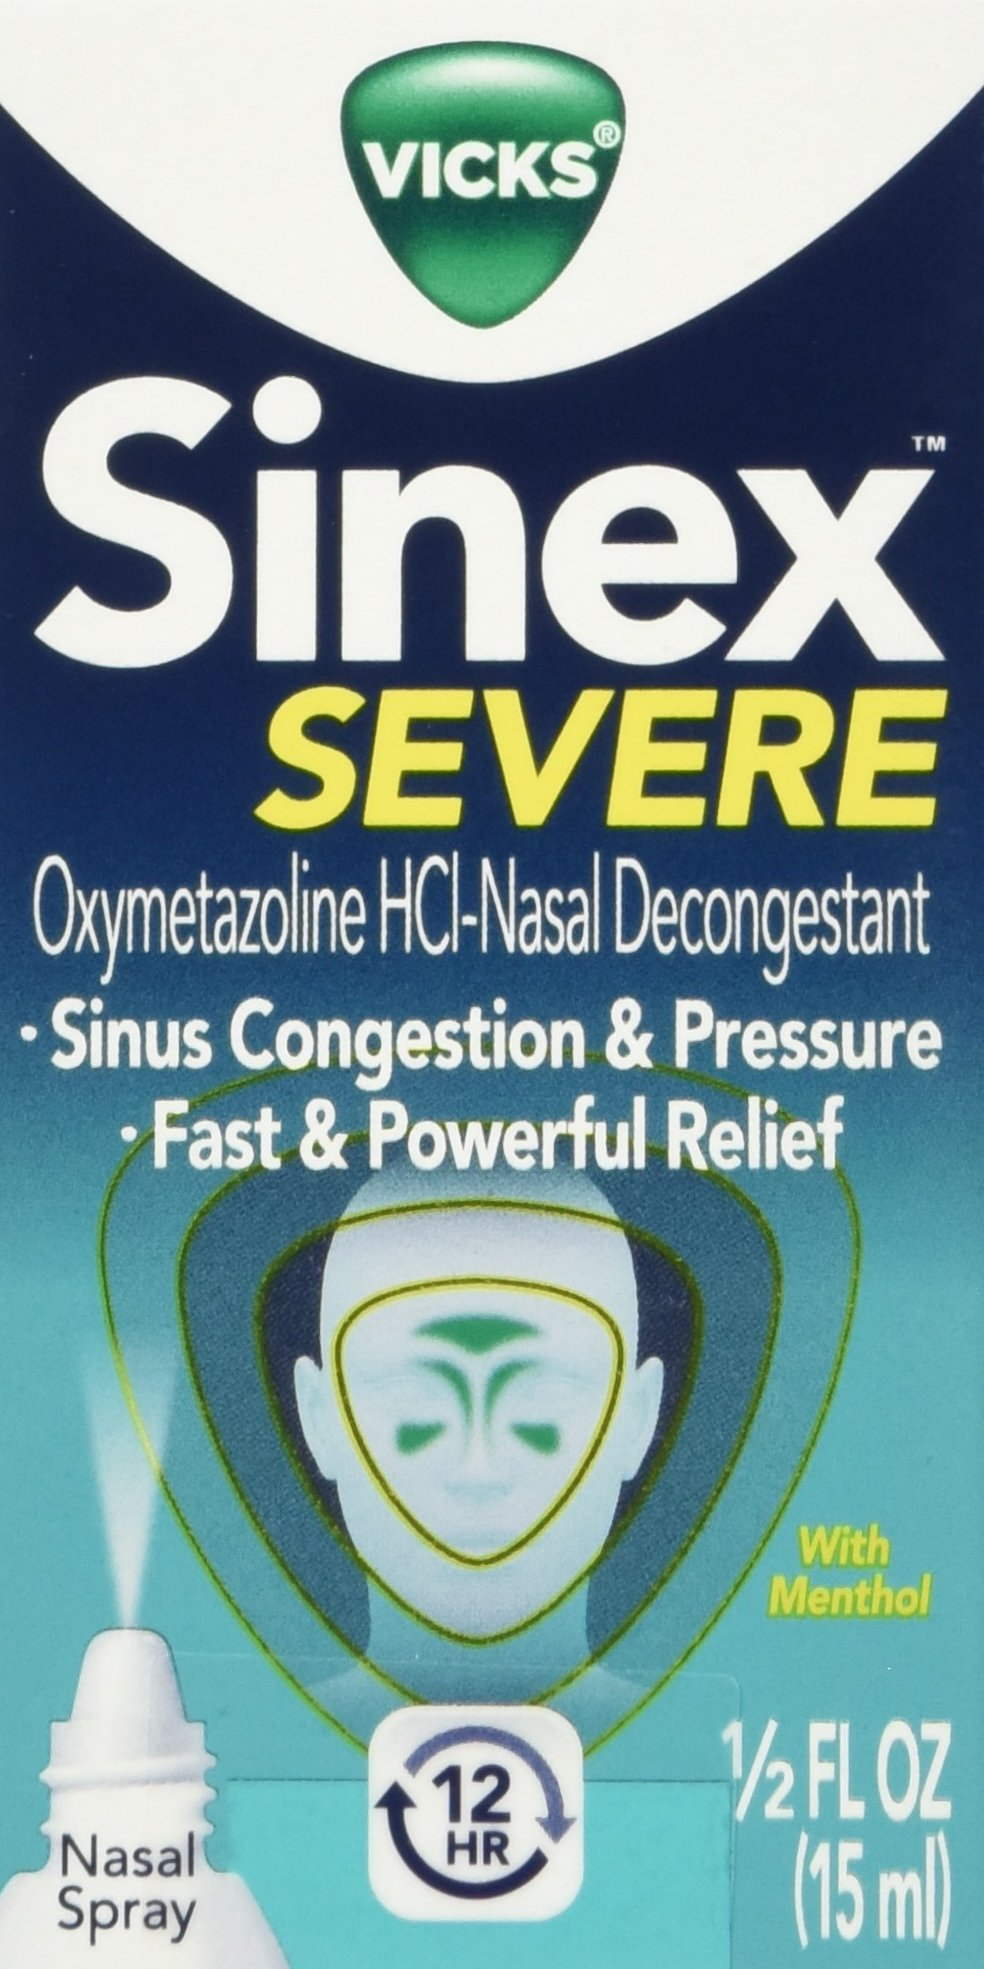 Vicks Sinex SEVERE Sinus and Nasal Spray with Menthol 0.50 oz (Pack of 4) (Packaging May Vary)